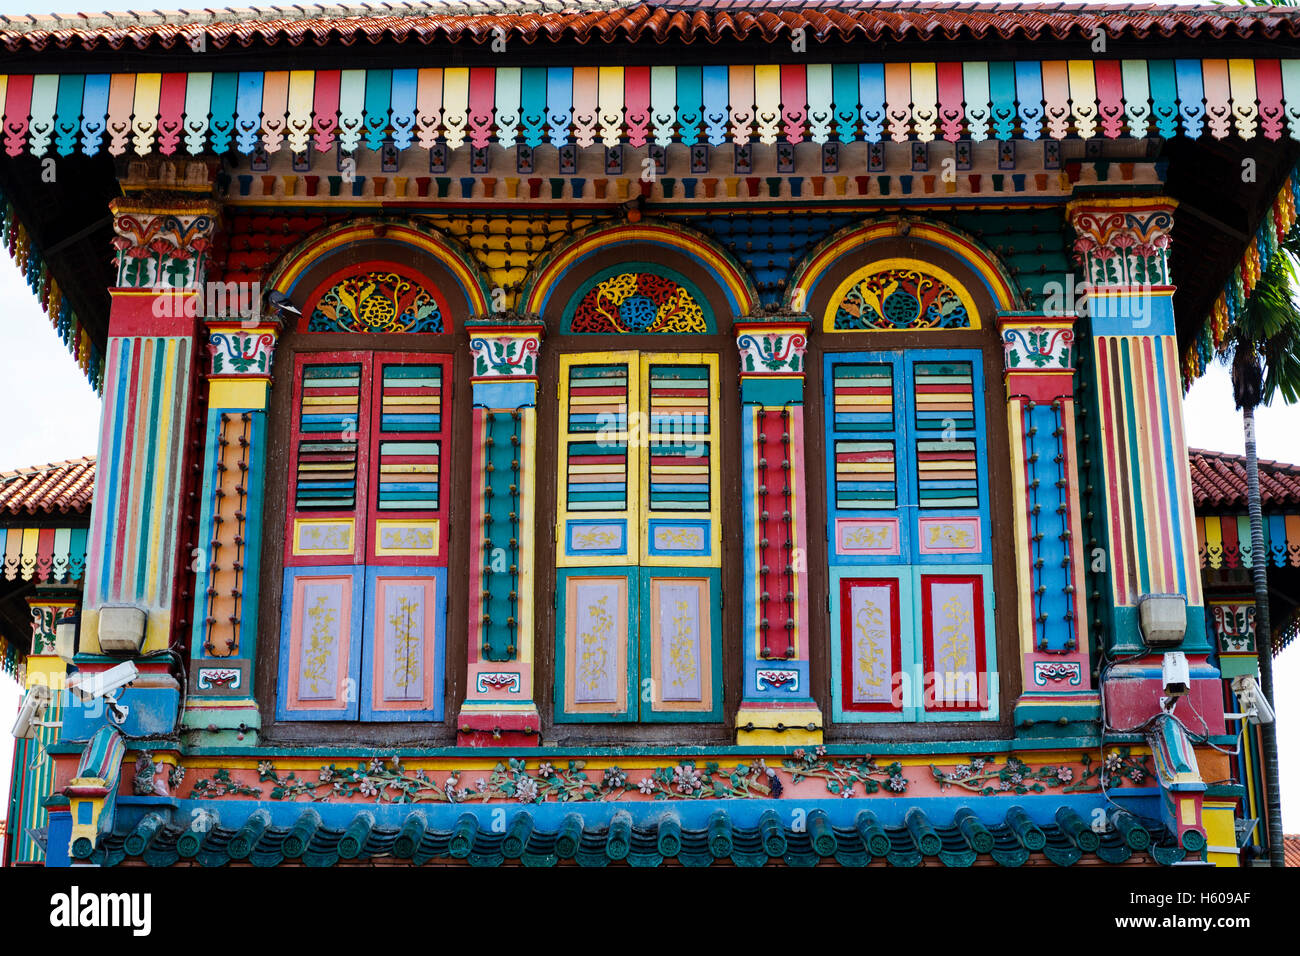 House of Tan Teng Niah, Little India, Singapore - Stock Image